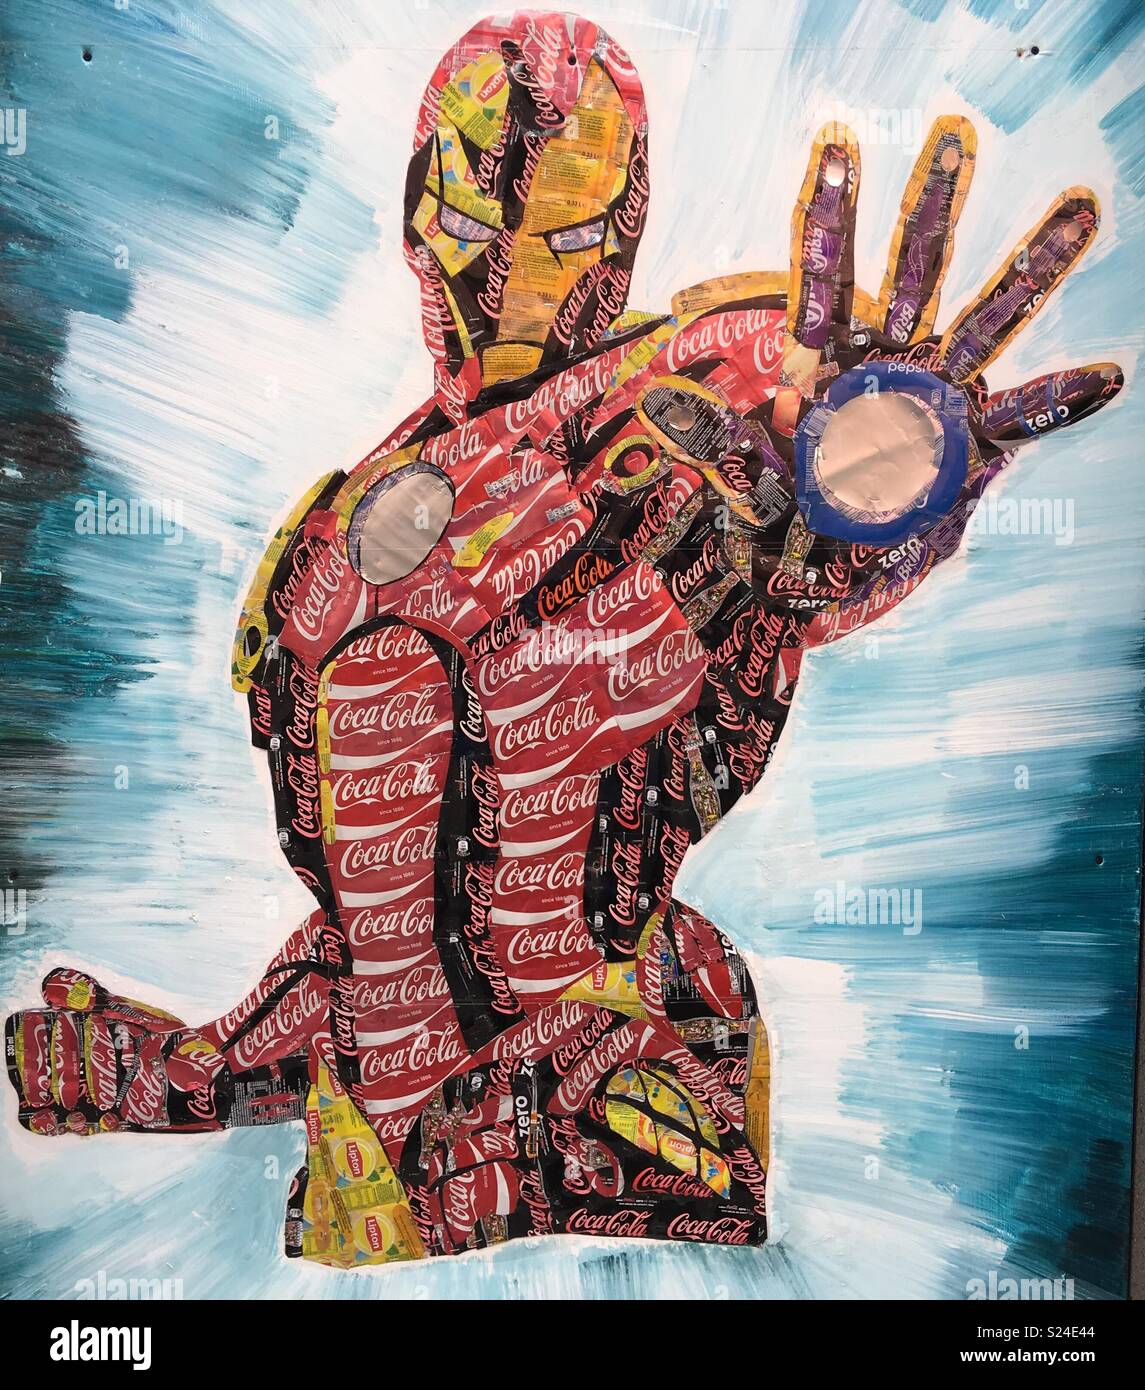 Collage of the Marvel comics character Iron Man, made from Coca-Cola ...